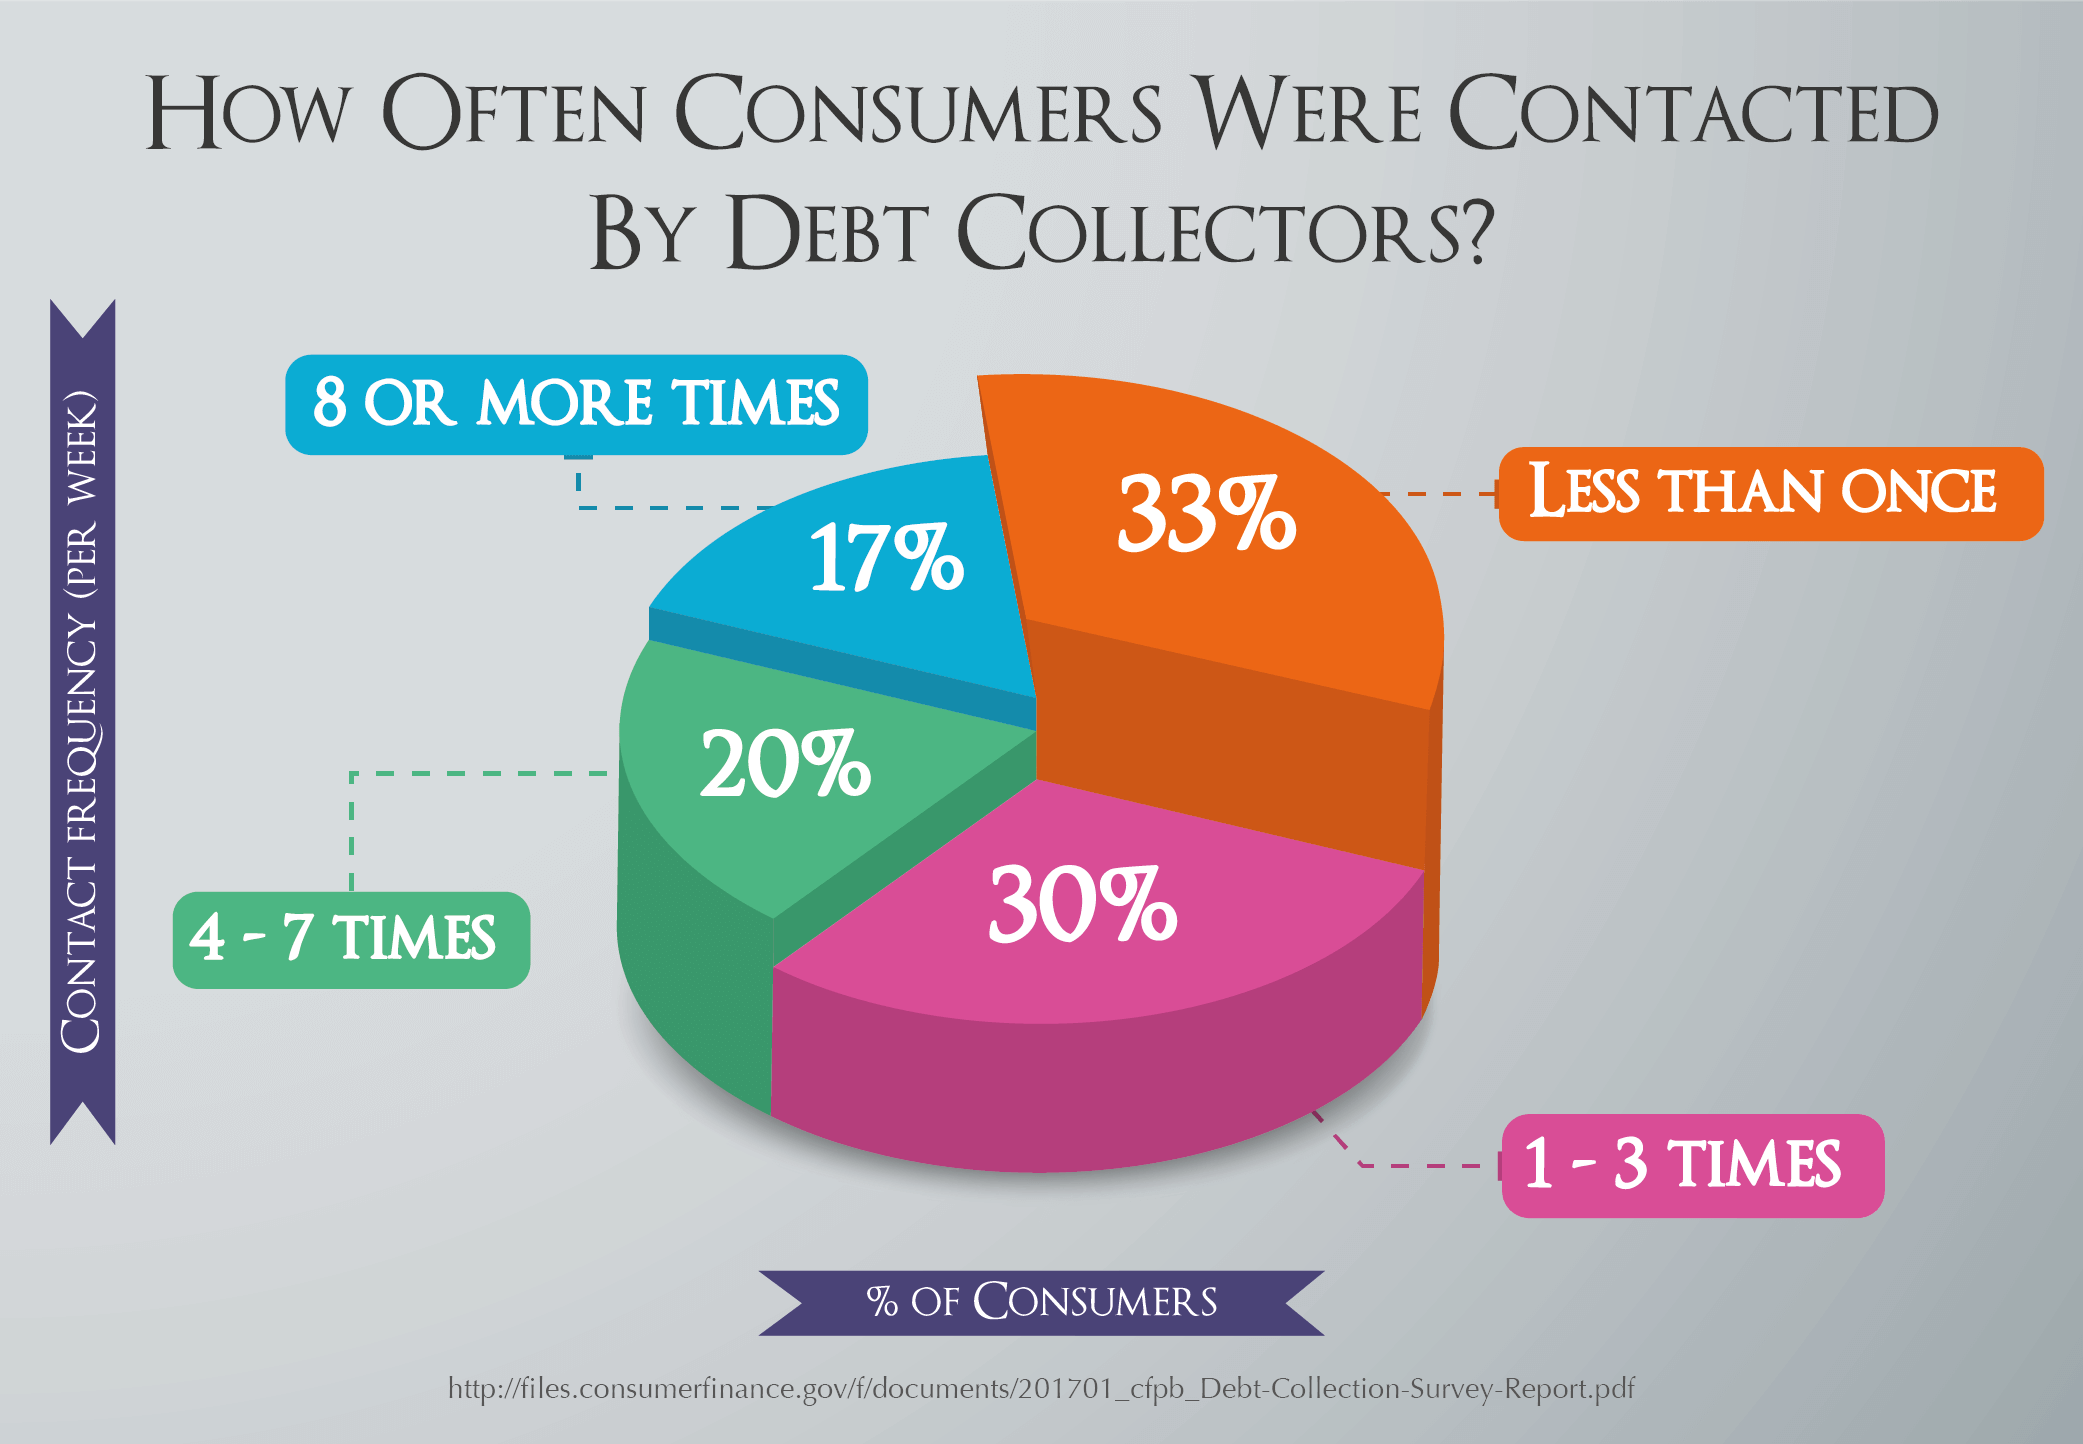 How Often Consumers Were Contacted By Debt Collectors?